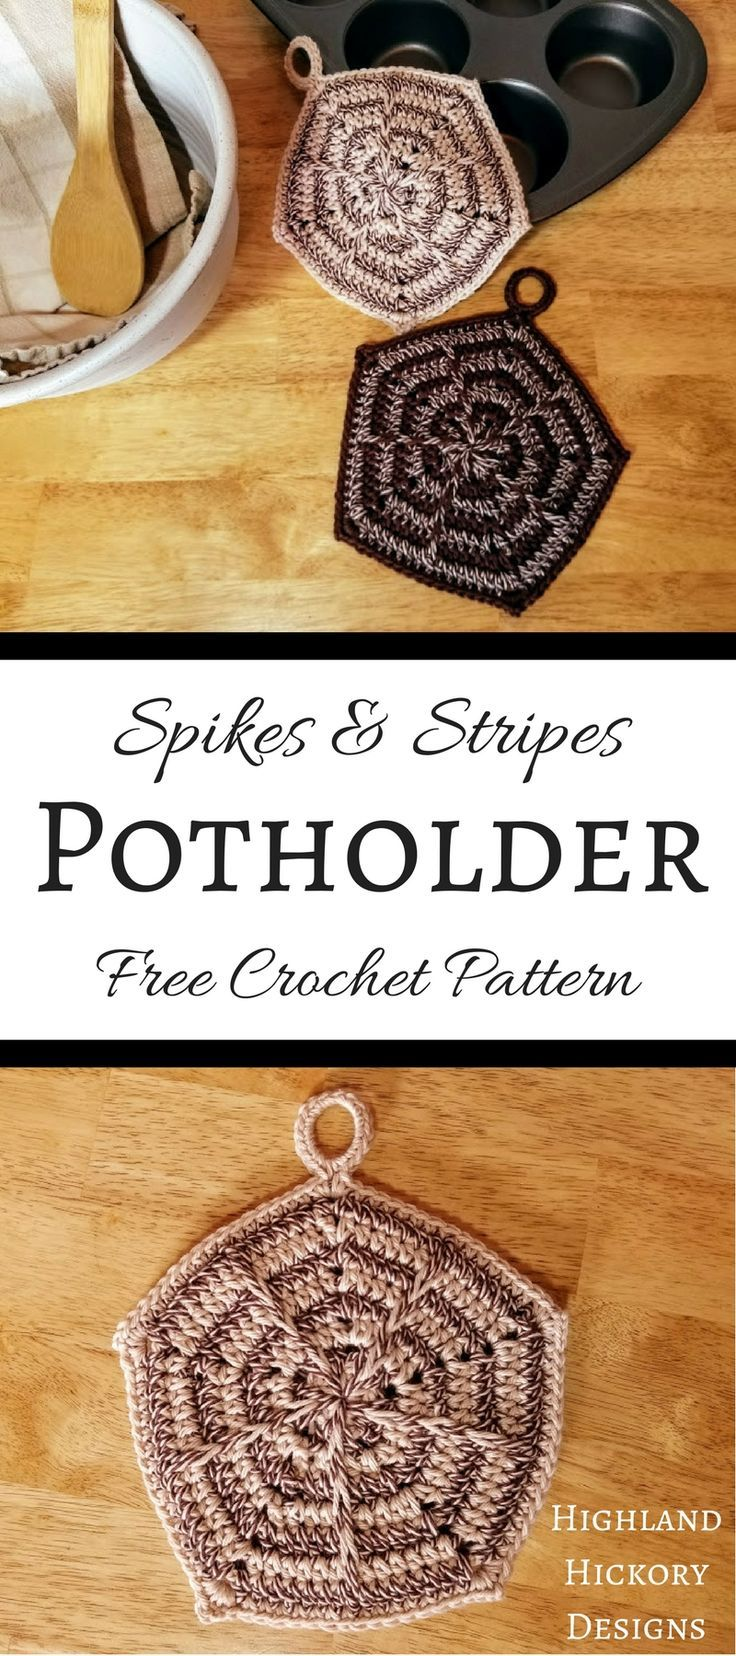 Crochet the Spikes and Stripes Potholder pattern for functional and stylish kitchen accessories! They have a double thickness and minimal holes to protect your hands from the heat when using your oven. There is also a photo tutorial! #crochet #crochetpattern #diy #kitchen